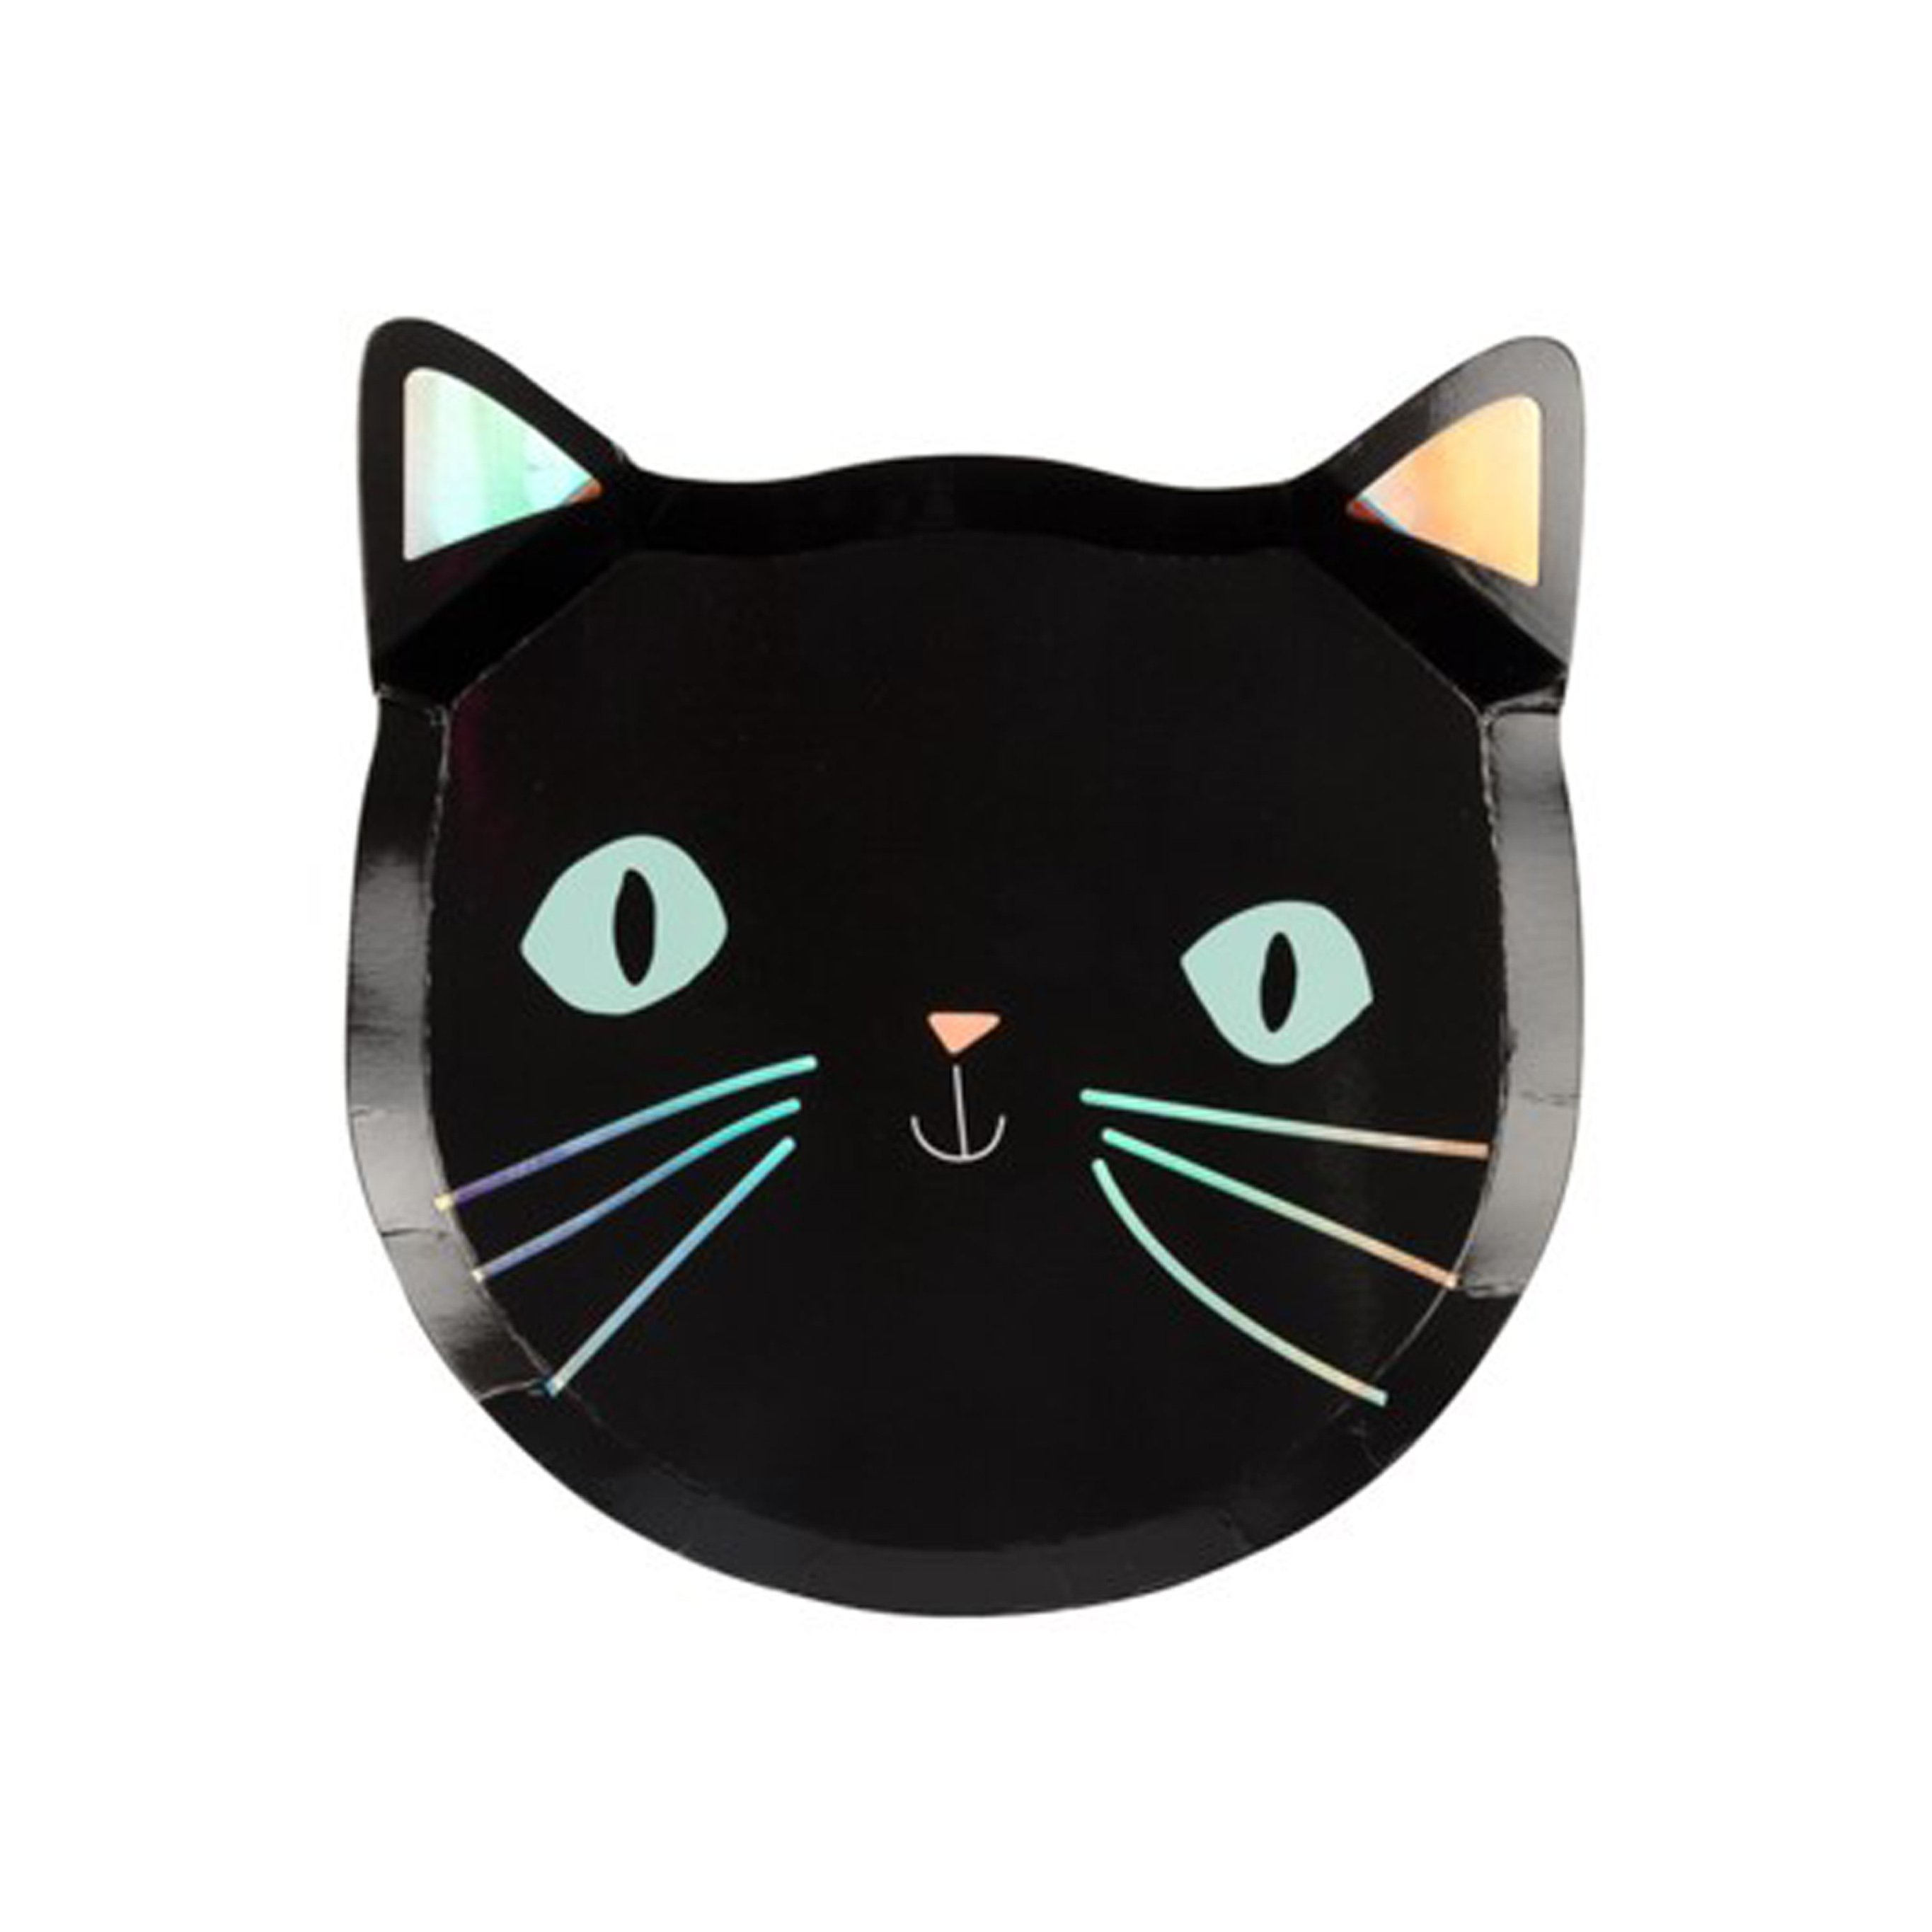 BUY ME / NEW ITEM $9.99 each Black Cat Paper Plates - 8 Pack